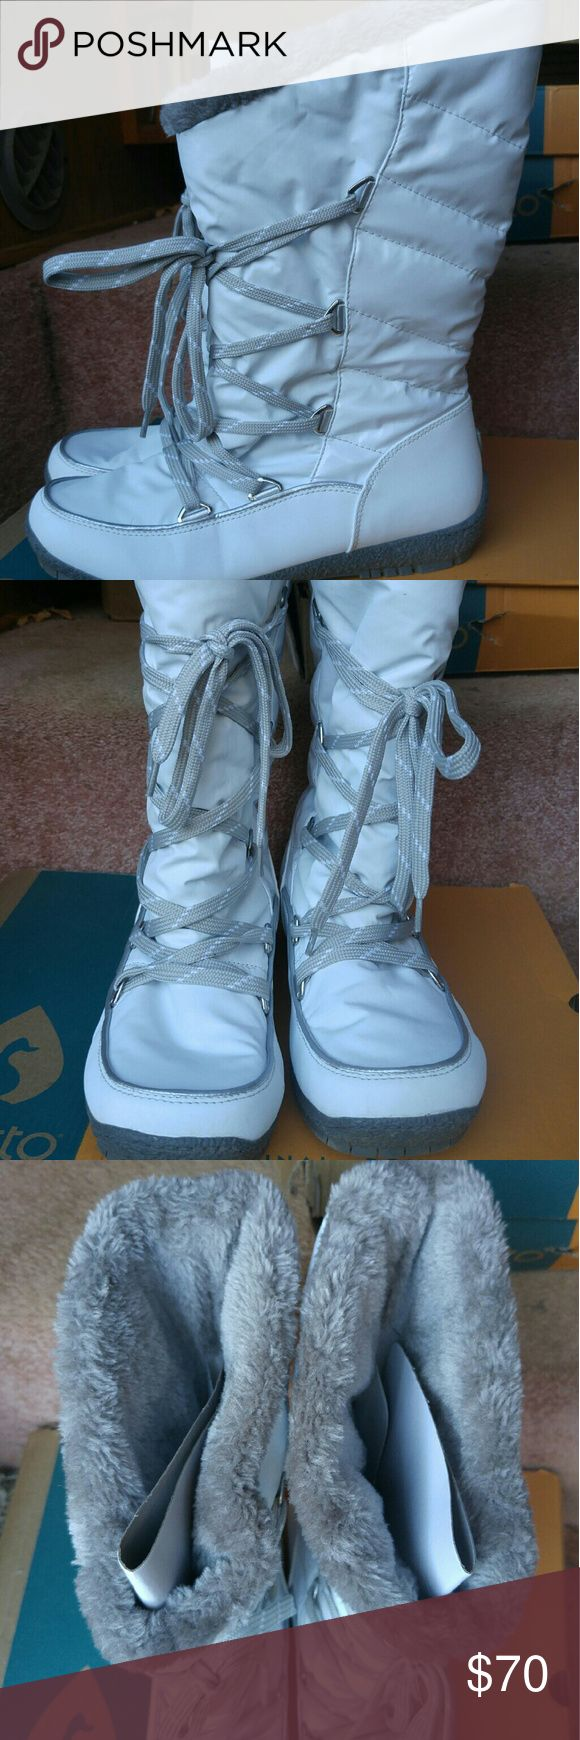 Women's Sporto Boots Style Charlie Great brand Sporto boot durable, waterproof, and stylish.  Made for comfort, warmth, and durability. White trimmed in gray with a gray fur lining. Size 9M Sporto Shoes Lace Up Boots